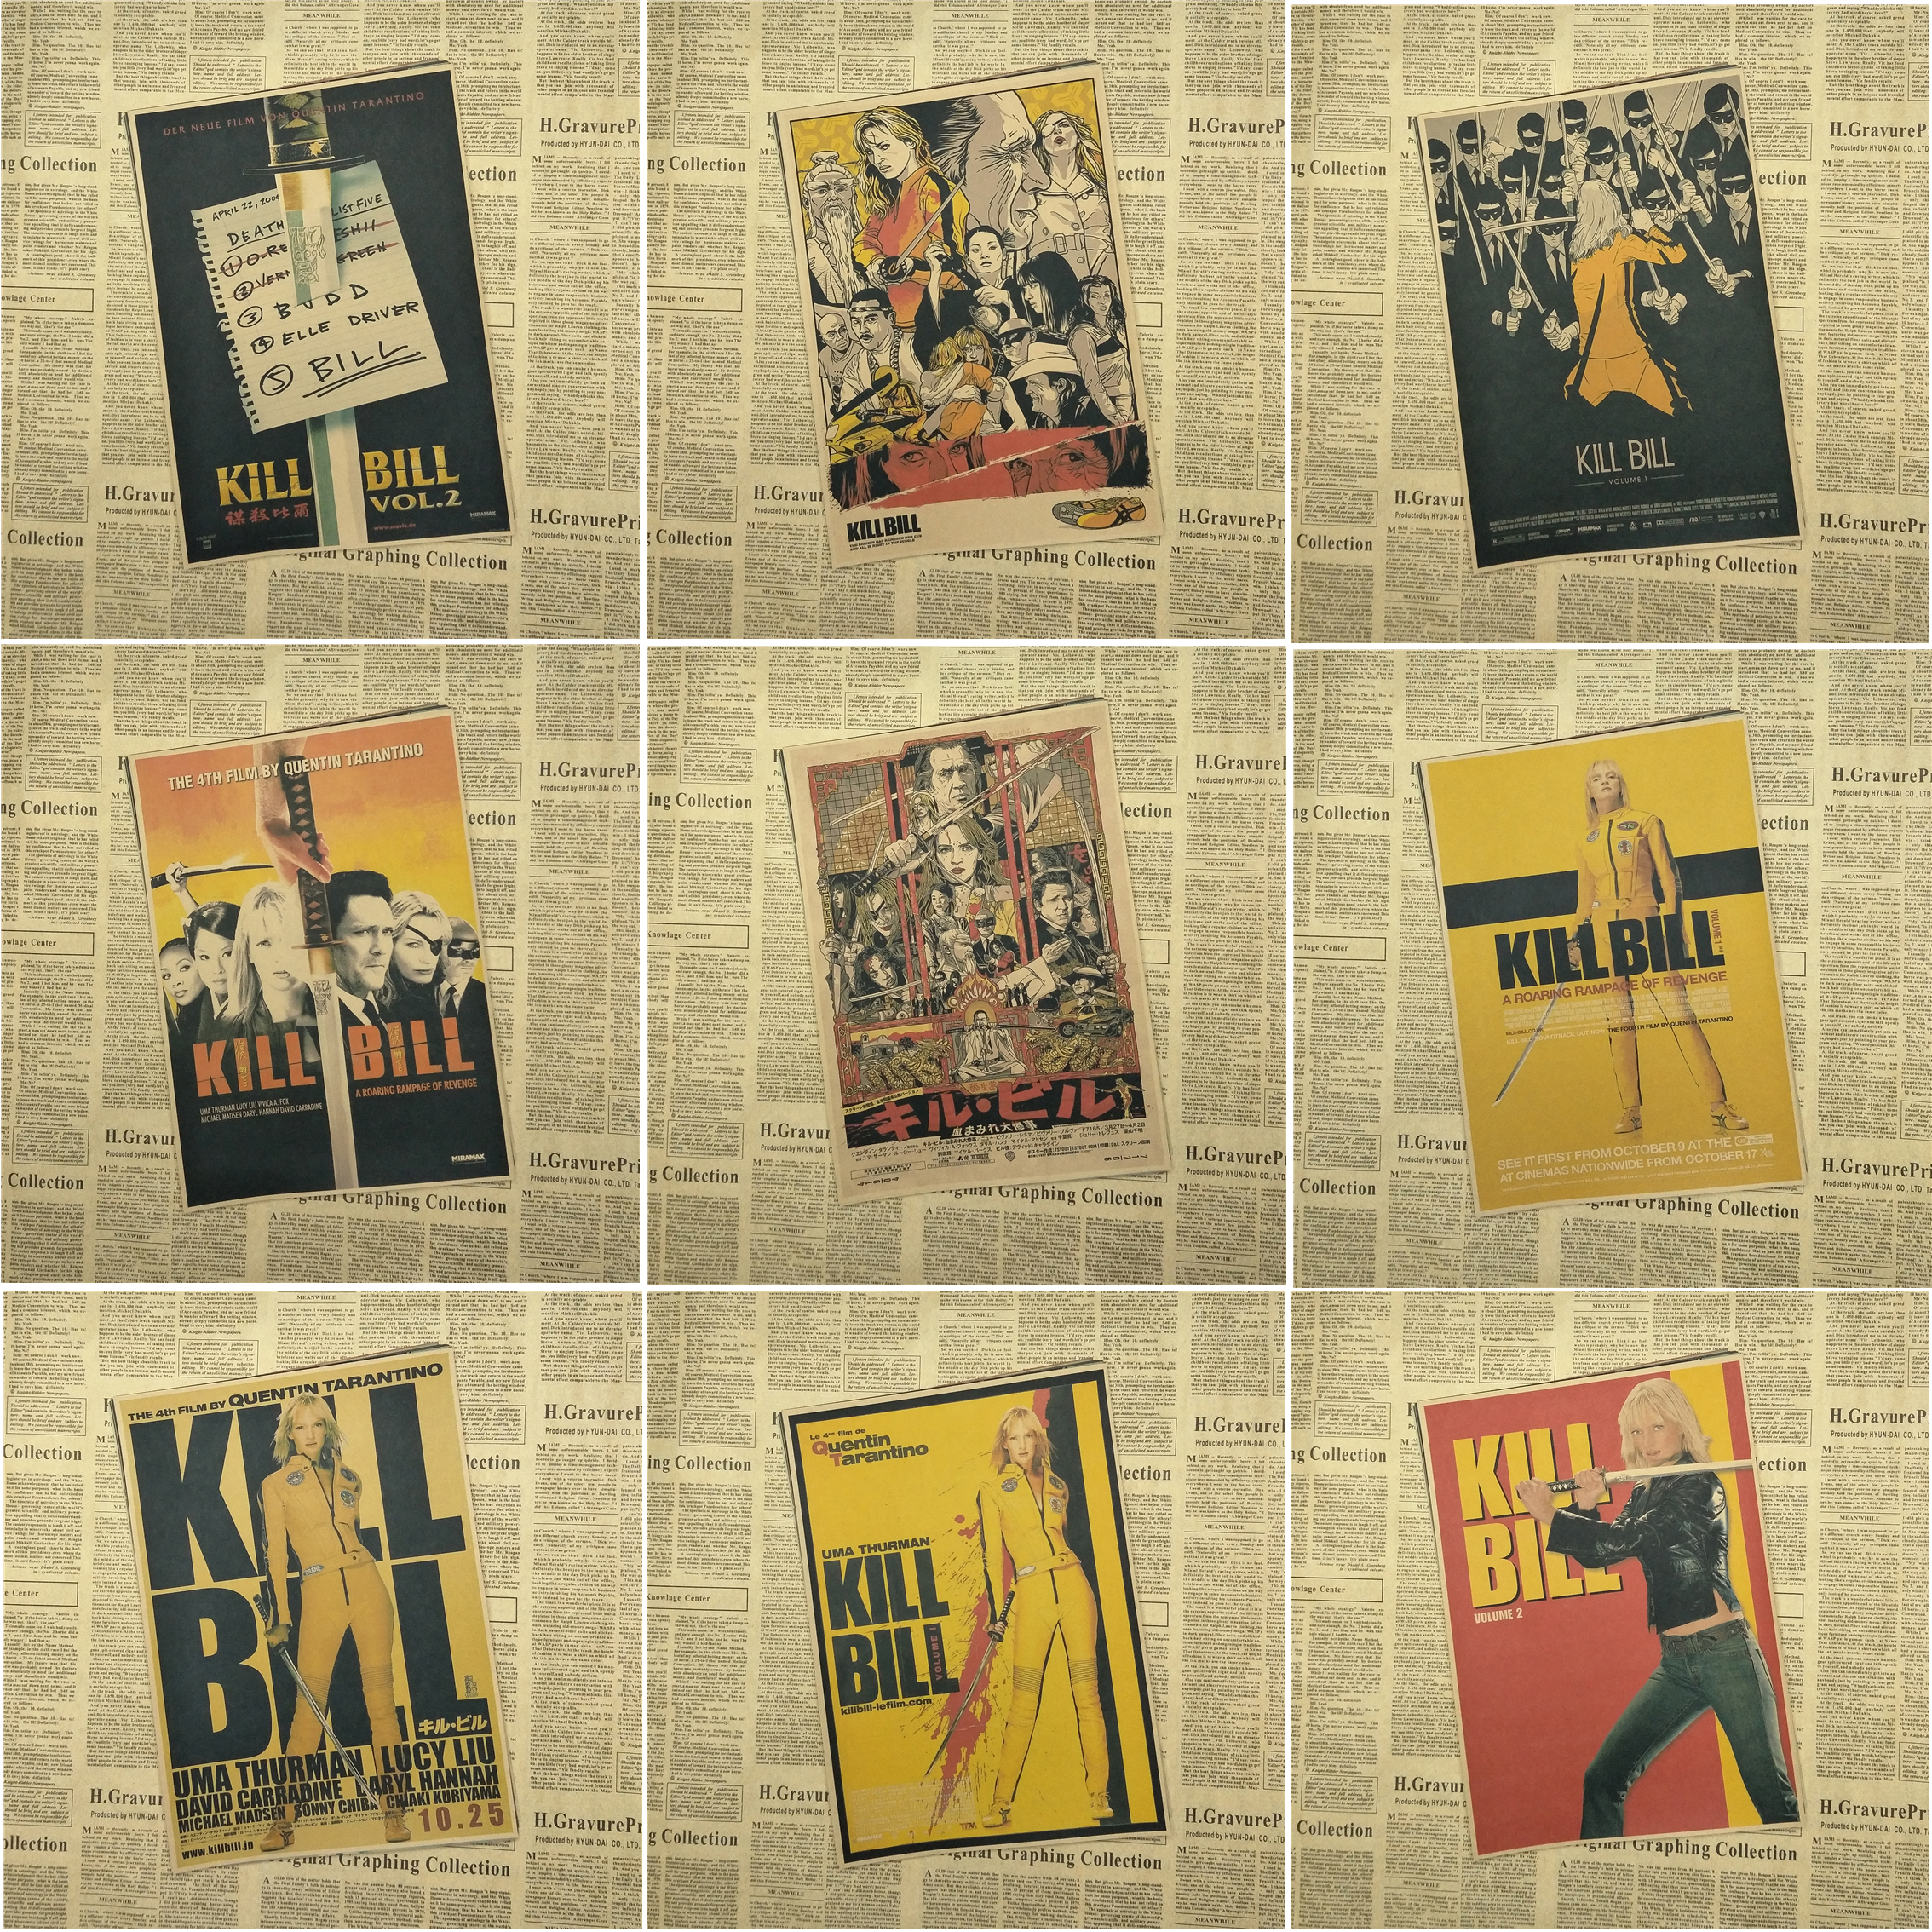 kill-bill-vol1-quentin-font-b-tarantino-b-font-poster-videos-classic-movie-kraft-paper-poster-bar-cafe-living-room-dining-room